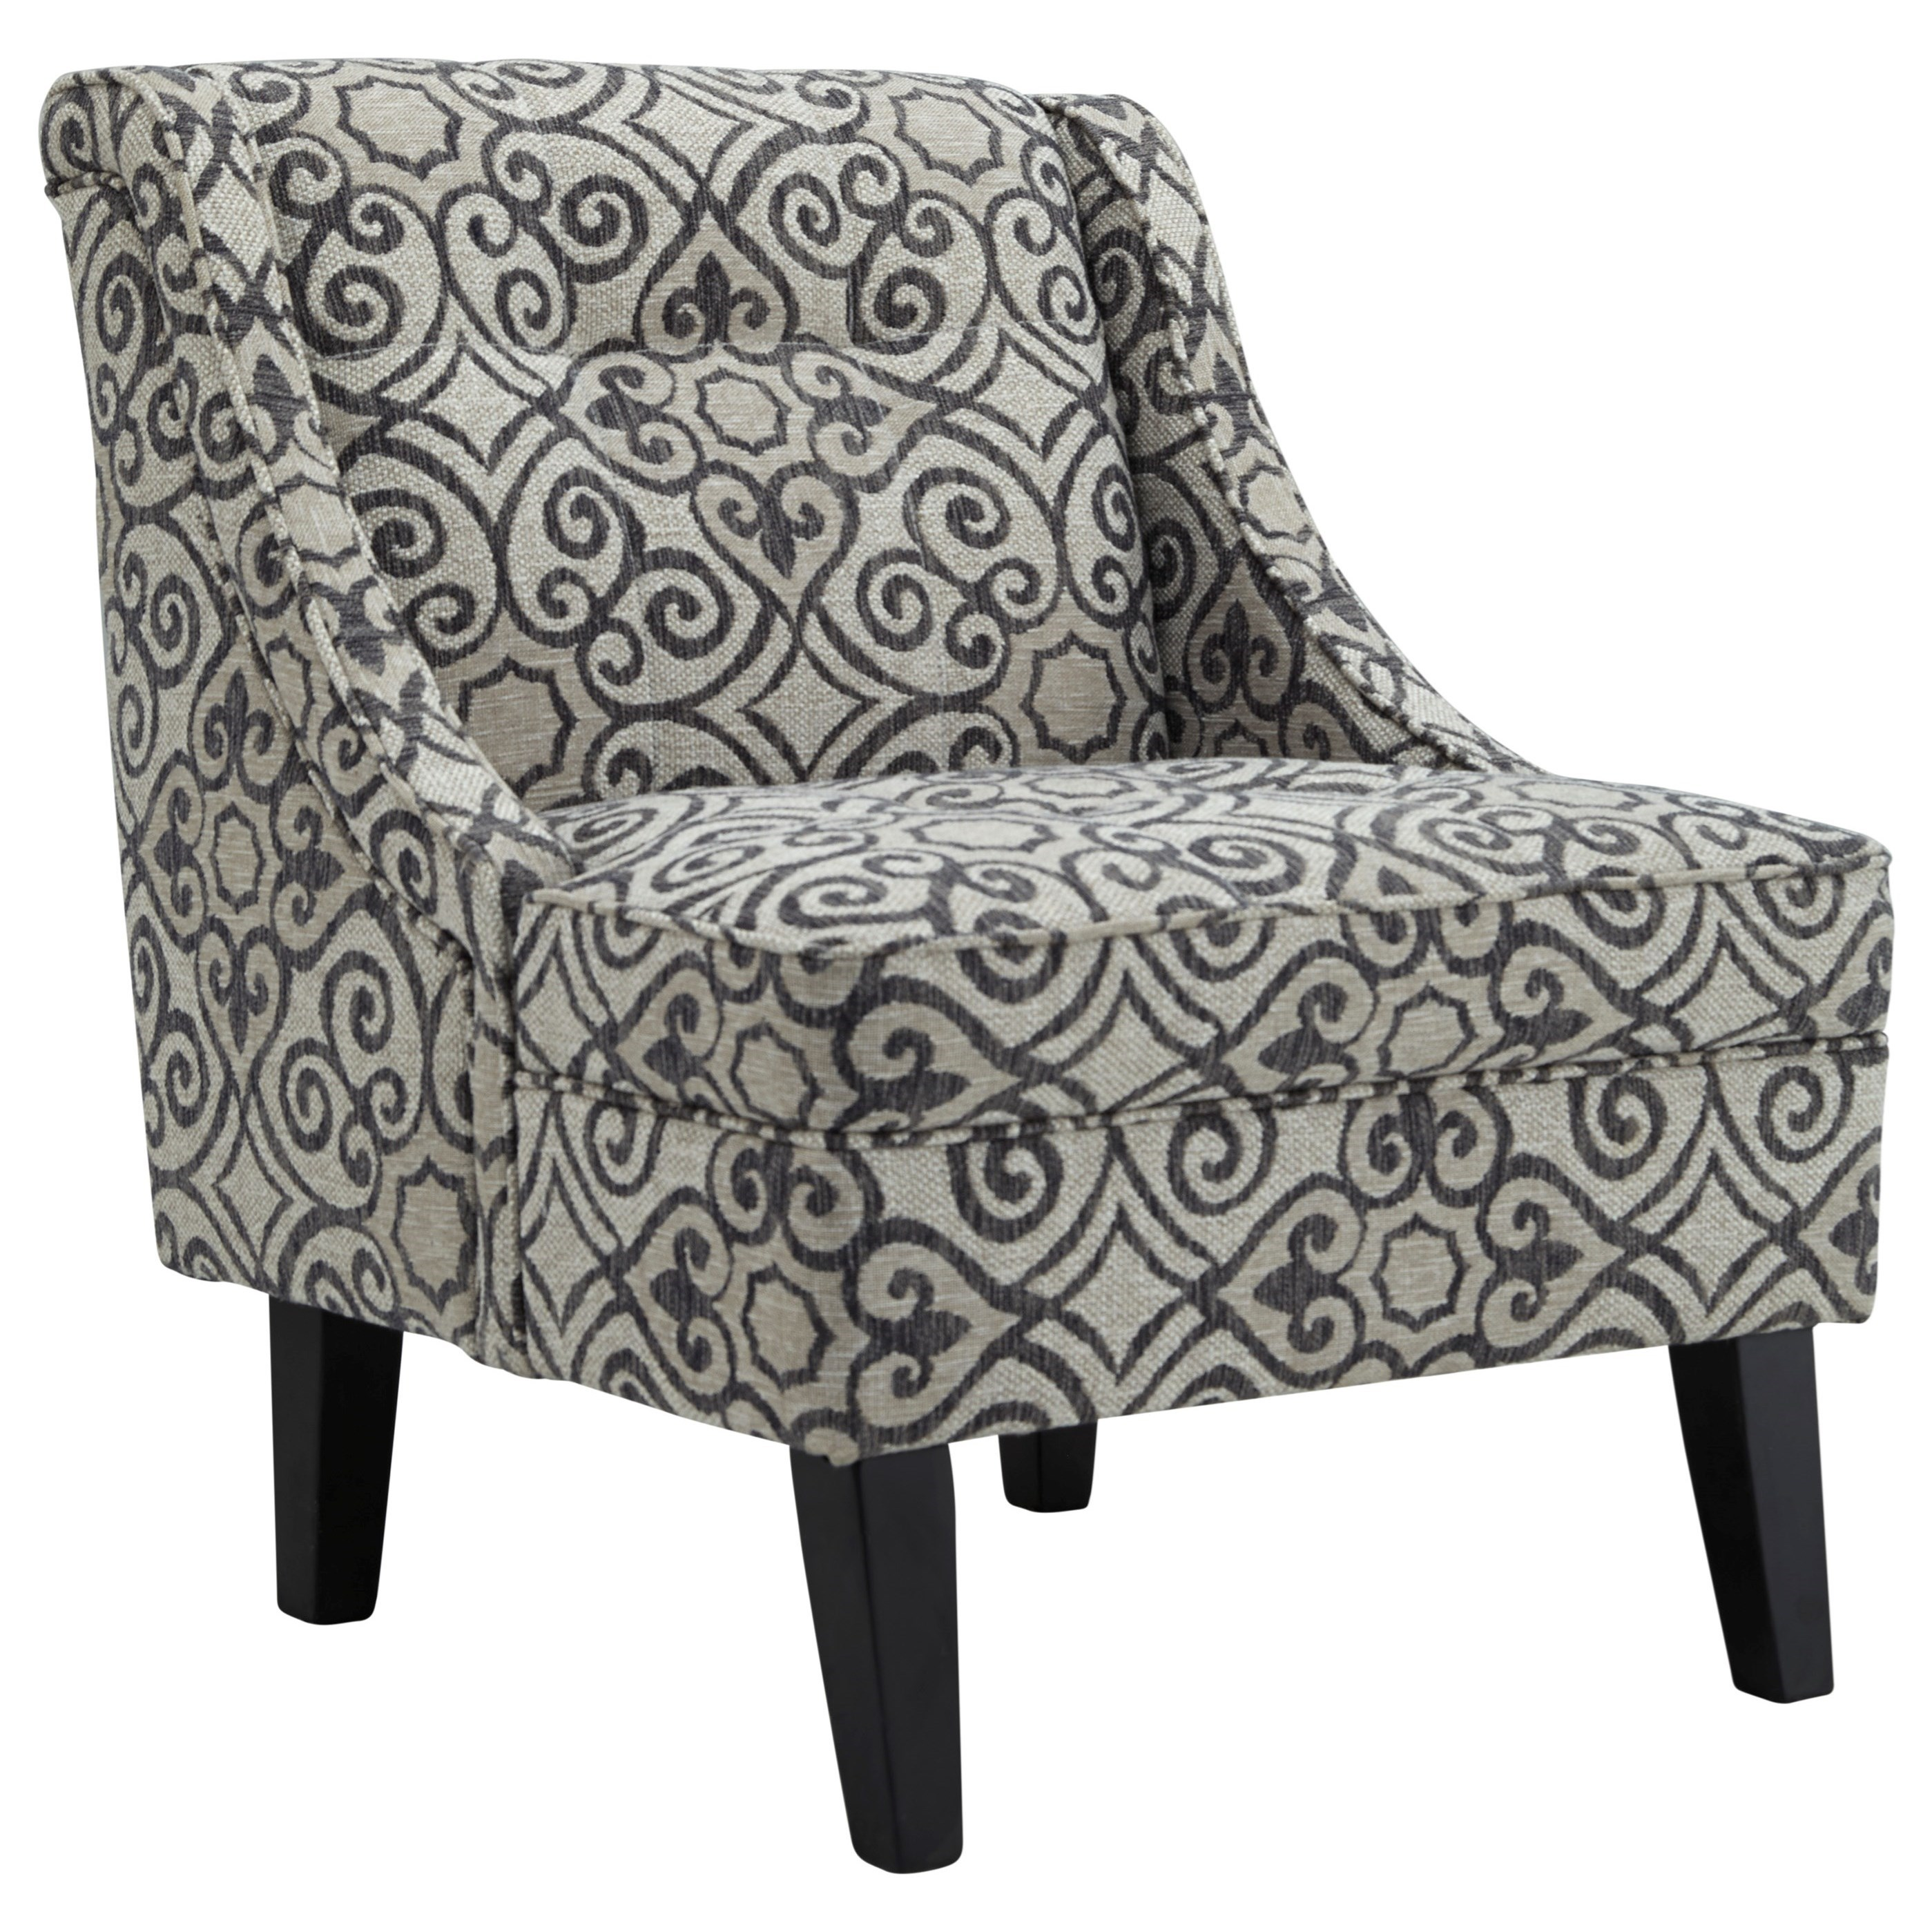 Ashley Furniture Kestrel 1810260 Accent Chair With Gray